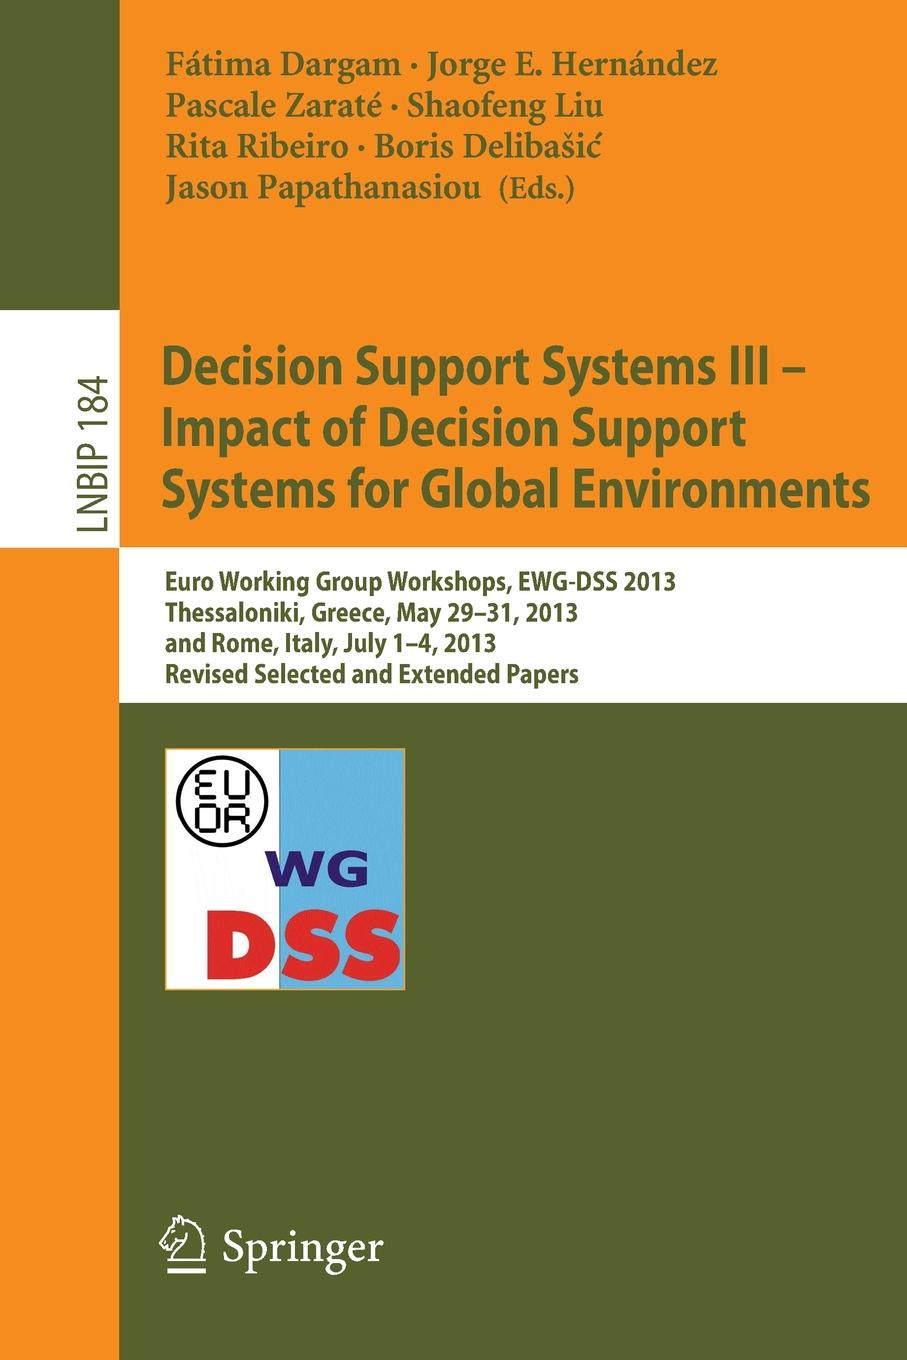 Decision Support Systems III - Impact of Decision Support Systems for Global Environments. Euro Working Group Workshops, EWG-DSS 2013, Thessaloniki, Greece, May 29-31, 2013, and Rome, Italy, July 1-4, 2013, Revised Selected and Extende... douglas n walton ethics of withdrawal of life support systems case studies in decision making in intensive care